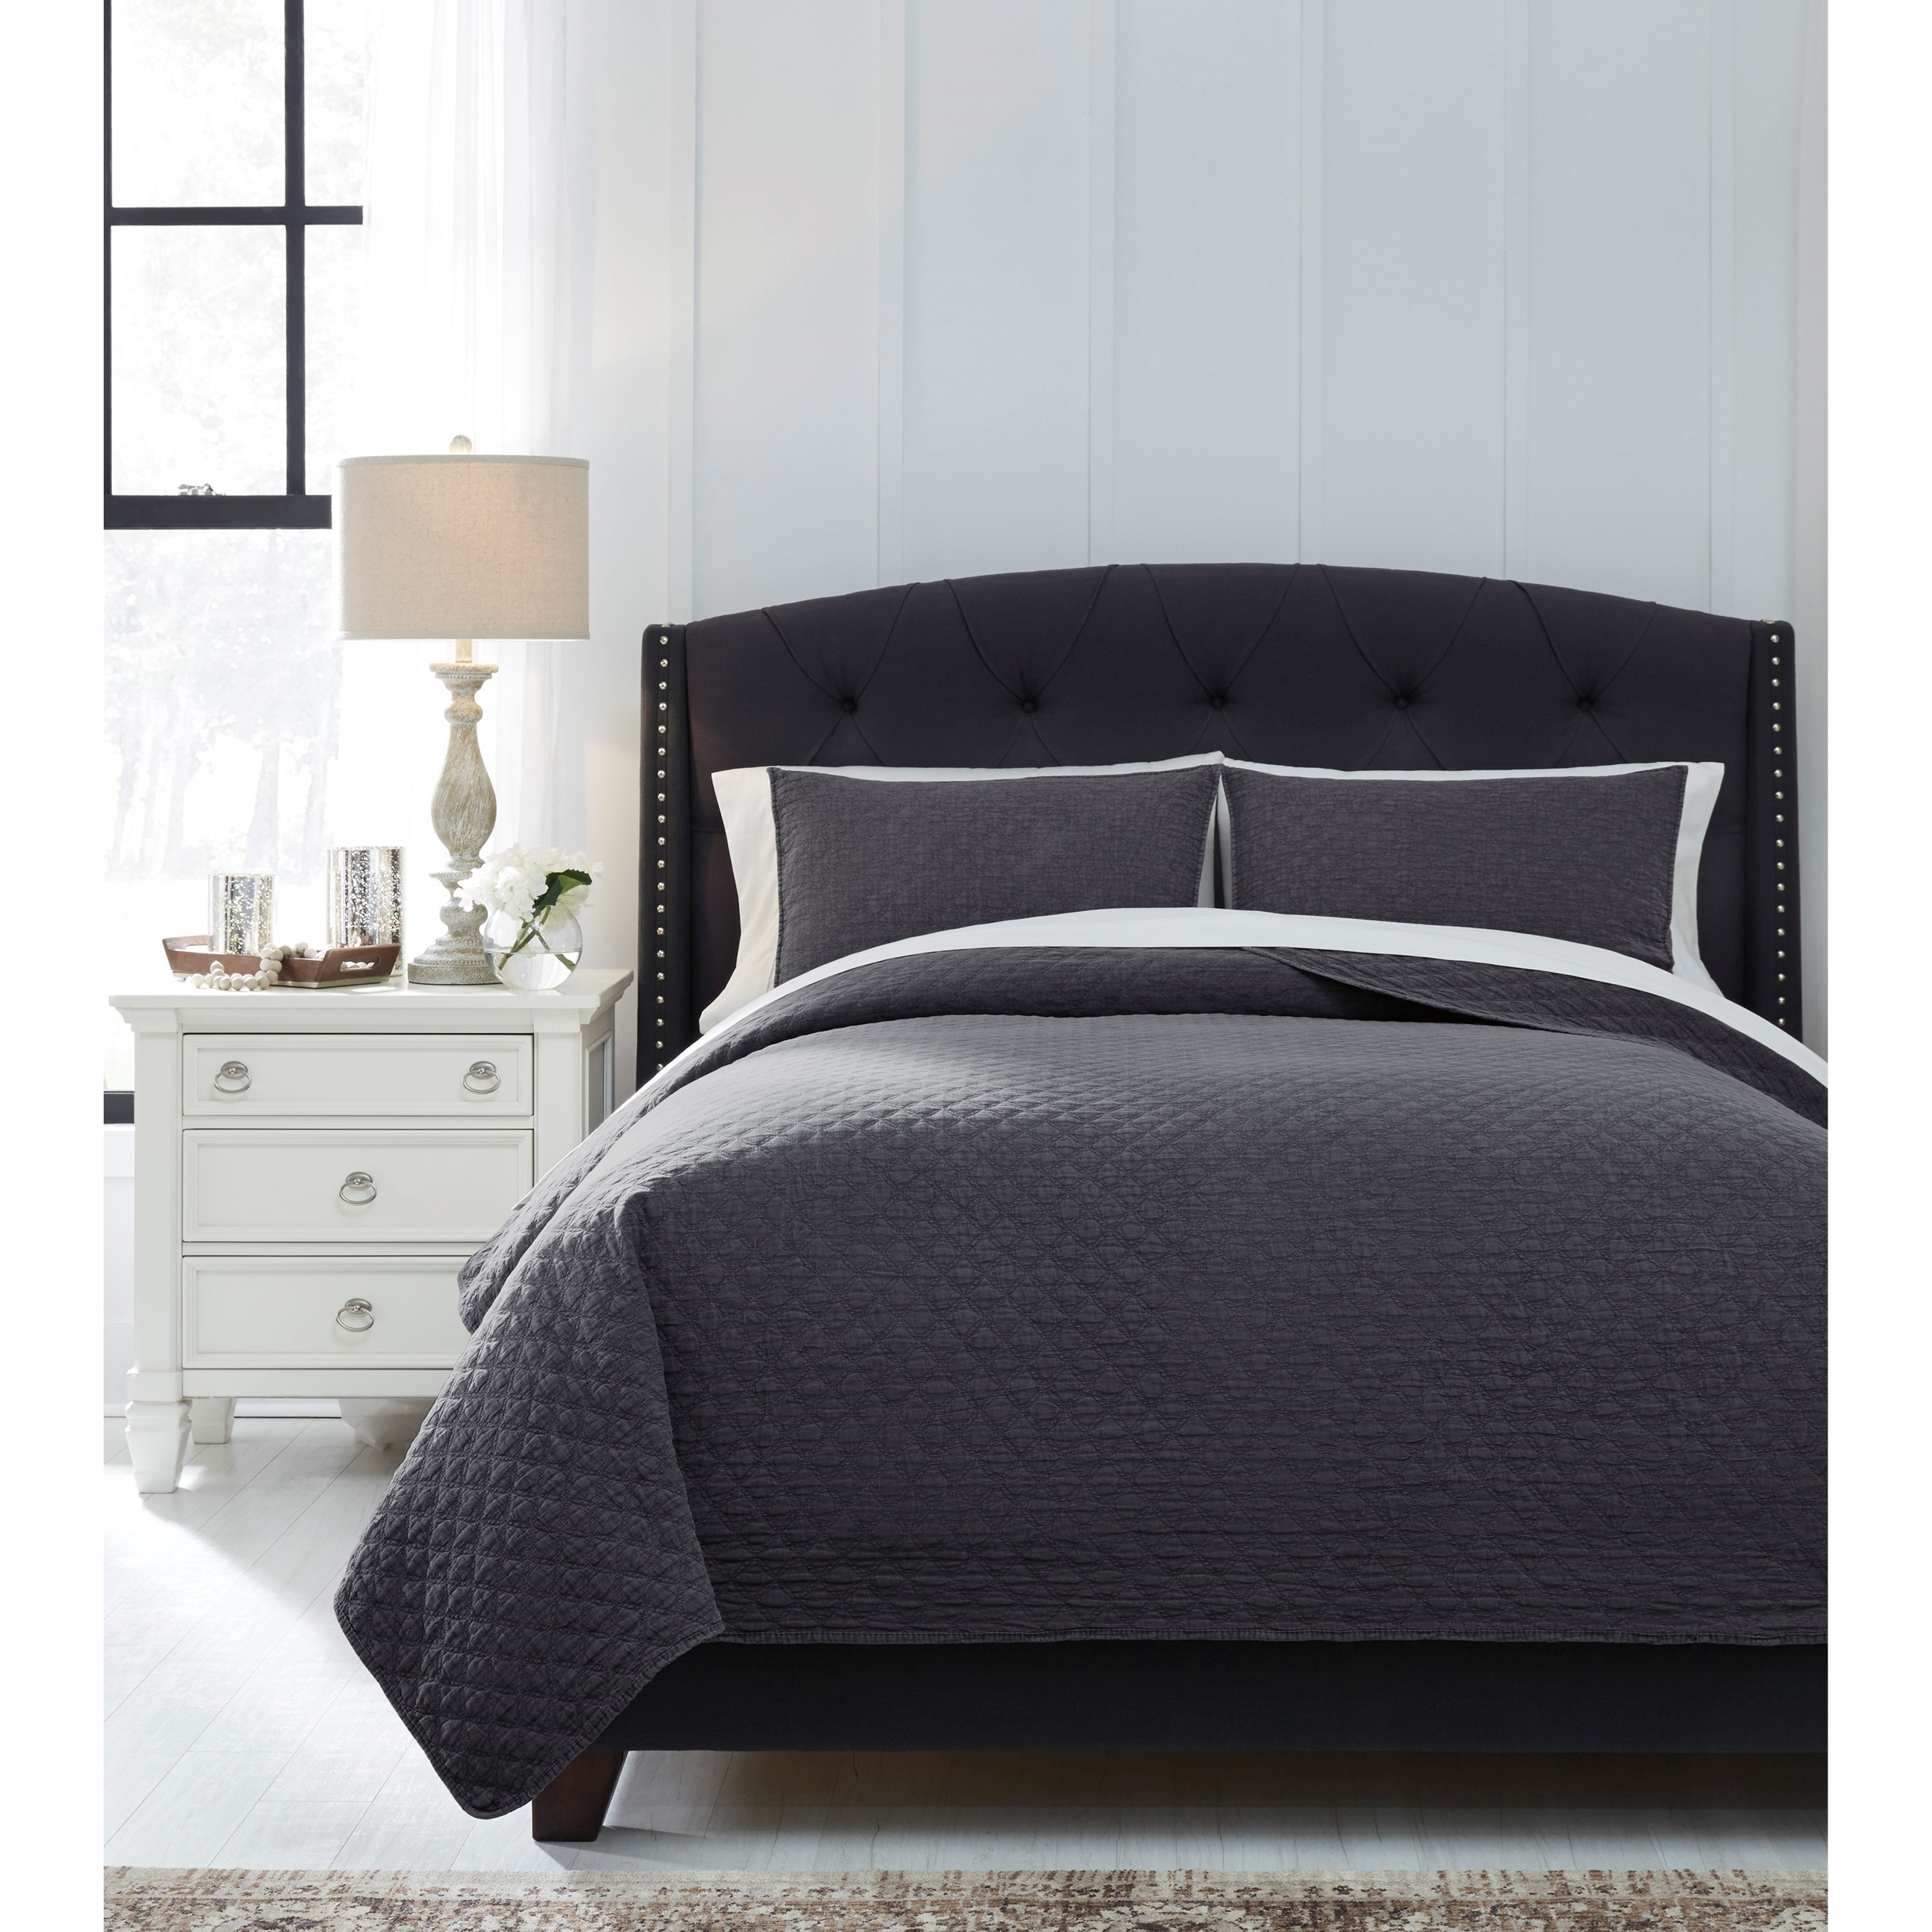 Bedding Sets Queen Ryter Charcoal Coverlet Set by Signature Design by Ashley at Northeast Factory Direct